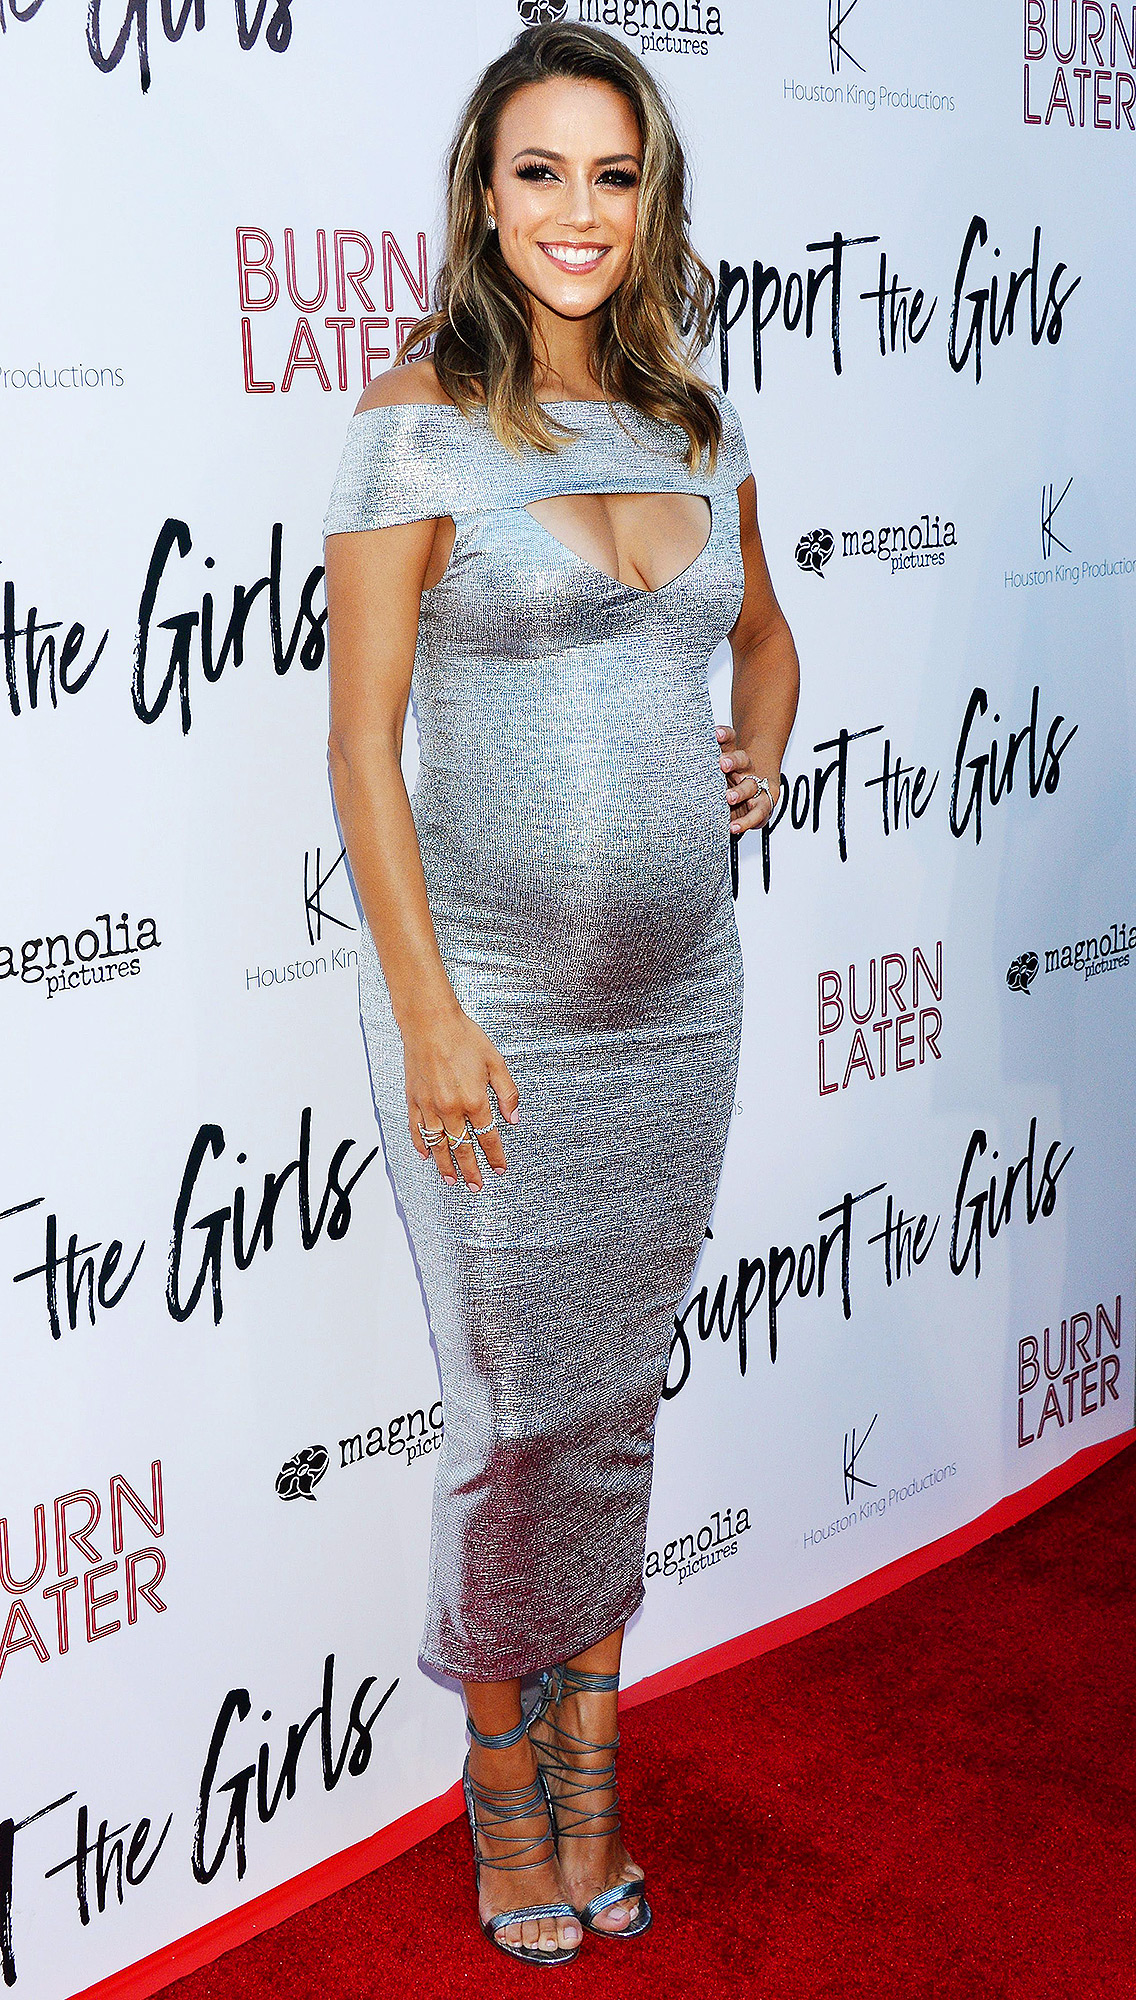 'Support The Girls' film premiere, Arrivals, Los Angeles, USA - 22 Aug 2018